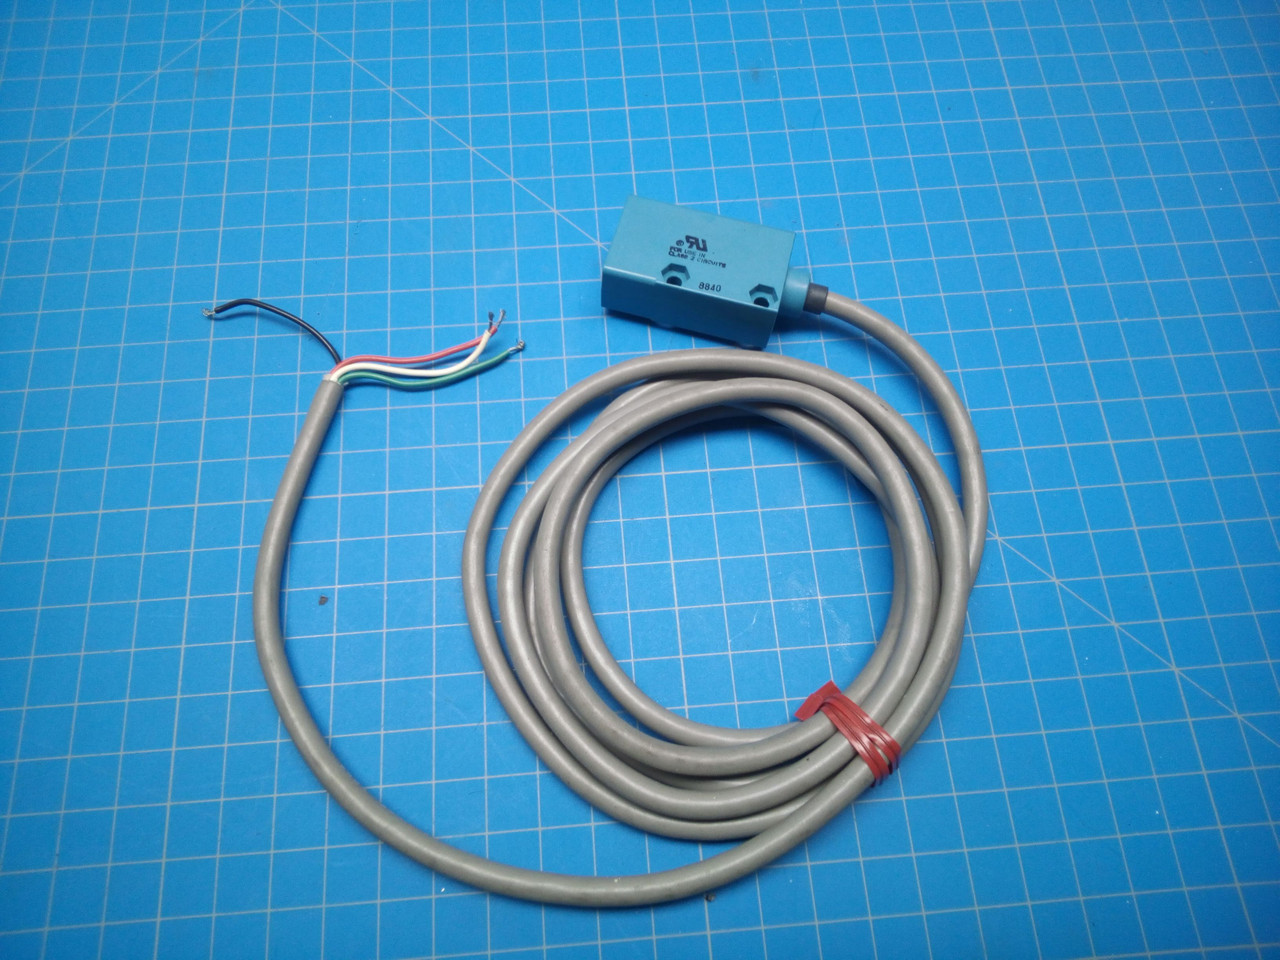 Honeywell Photoelectric Microswitch Sensor FE7C-DC6-M - P01-000099